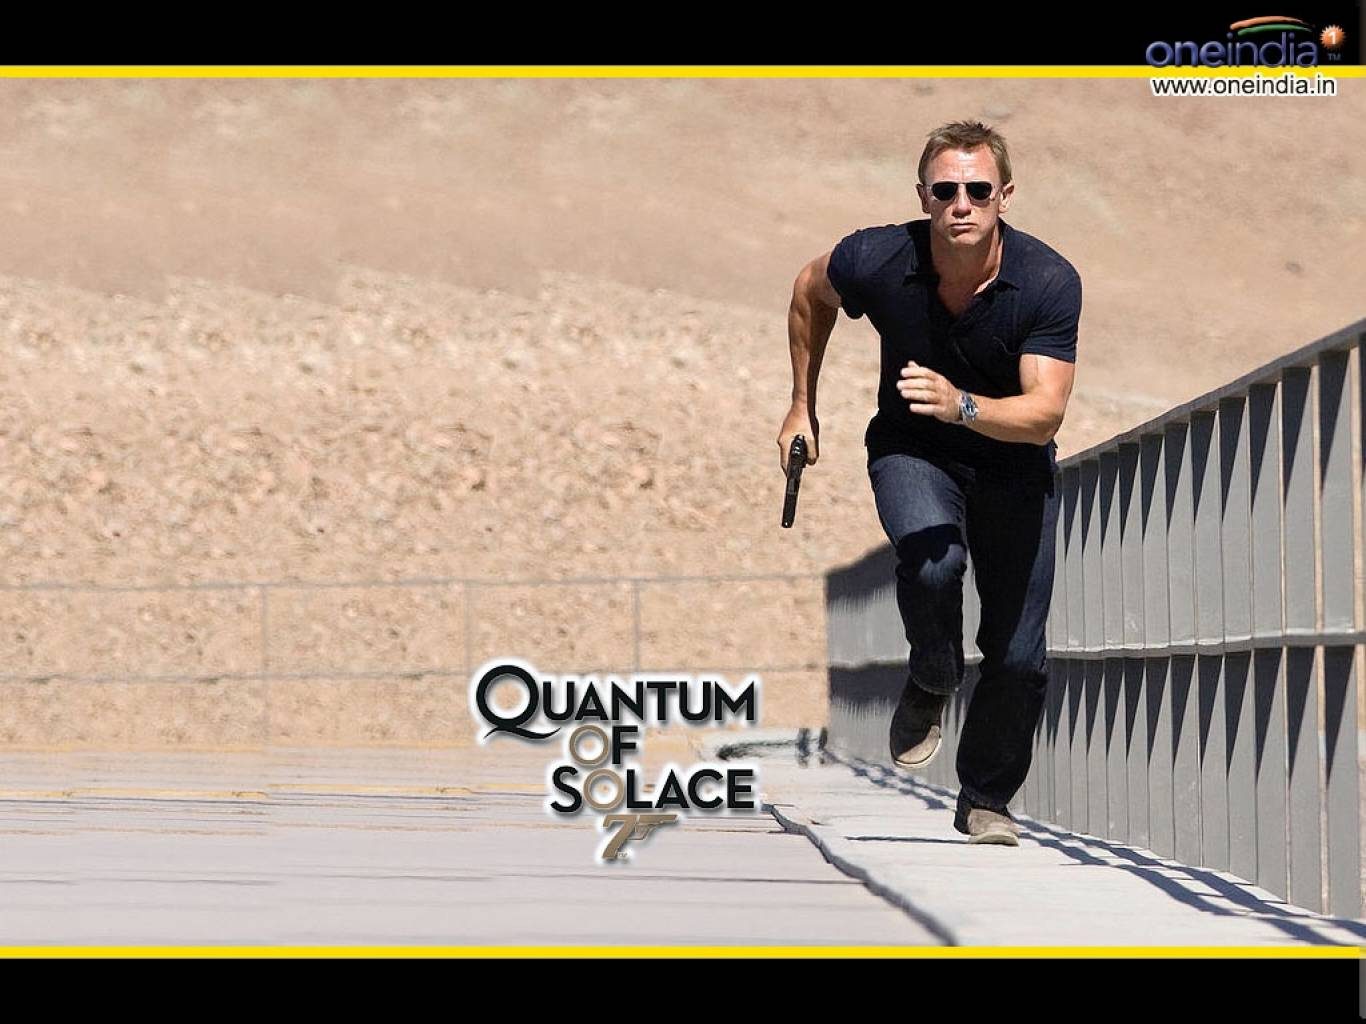 Quantum of Solace 007 Wallpapers